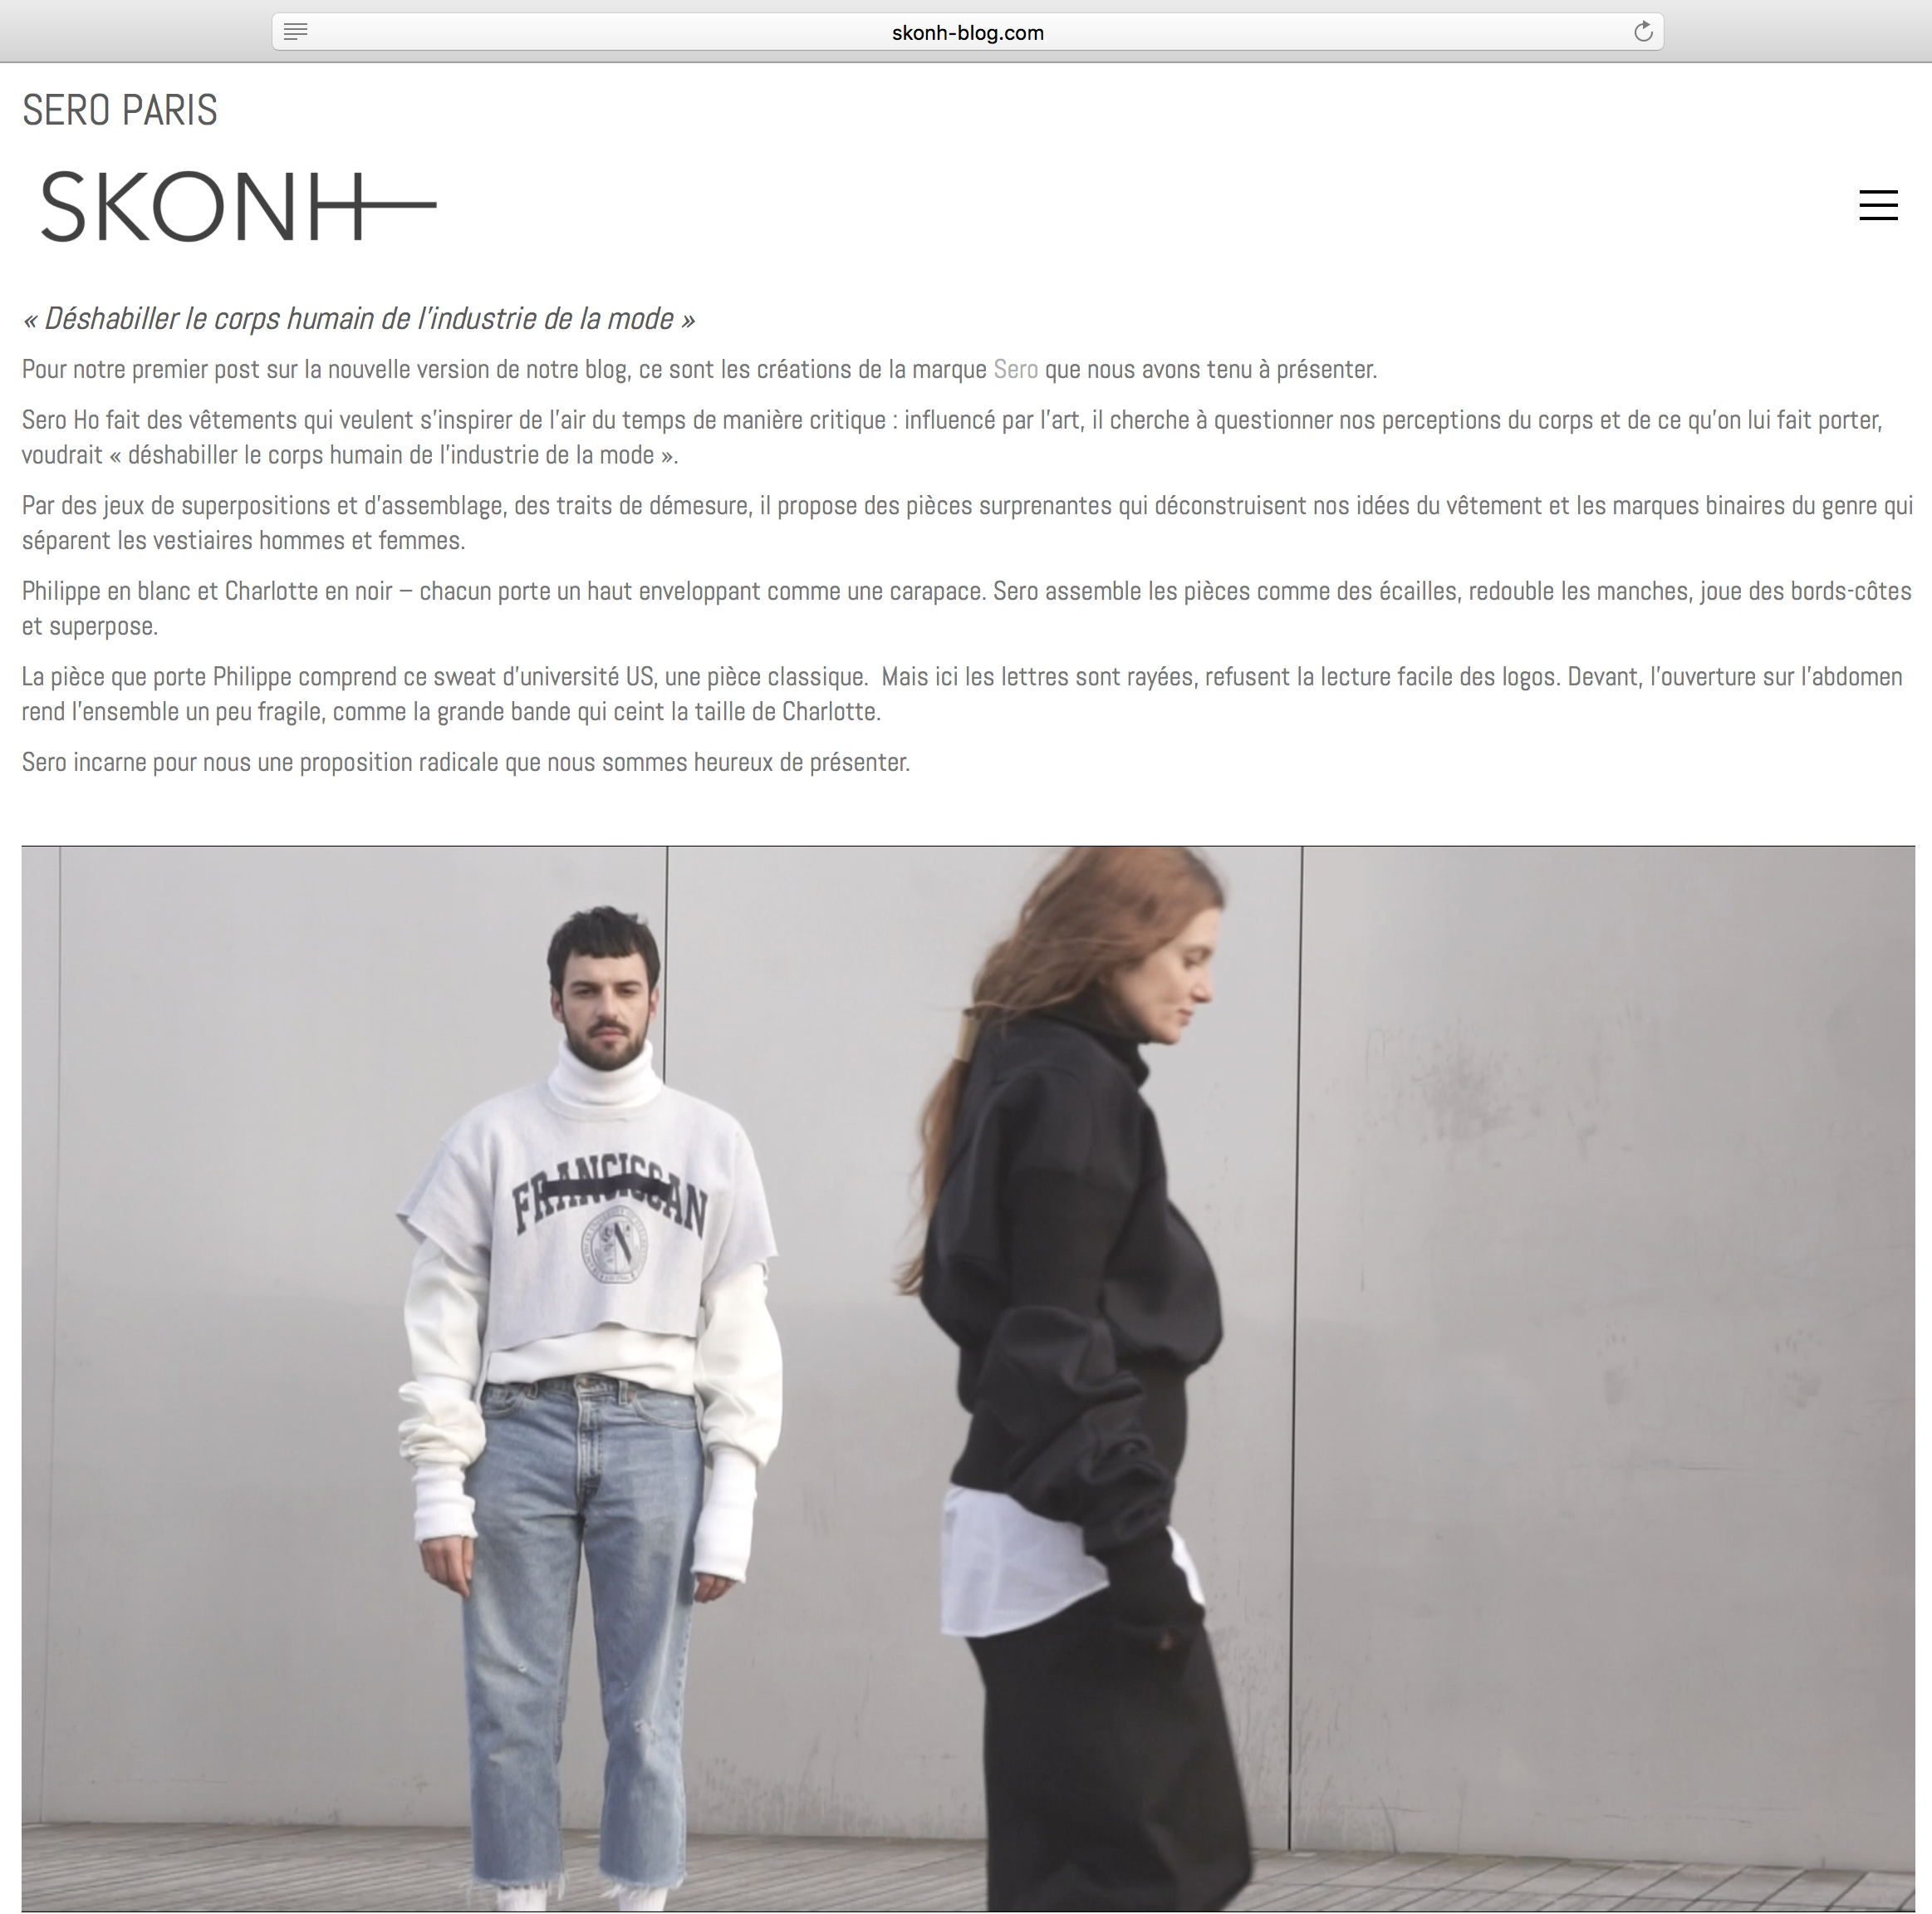 SKONH WITH SERO PARIS